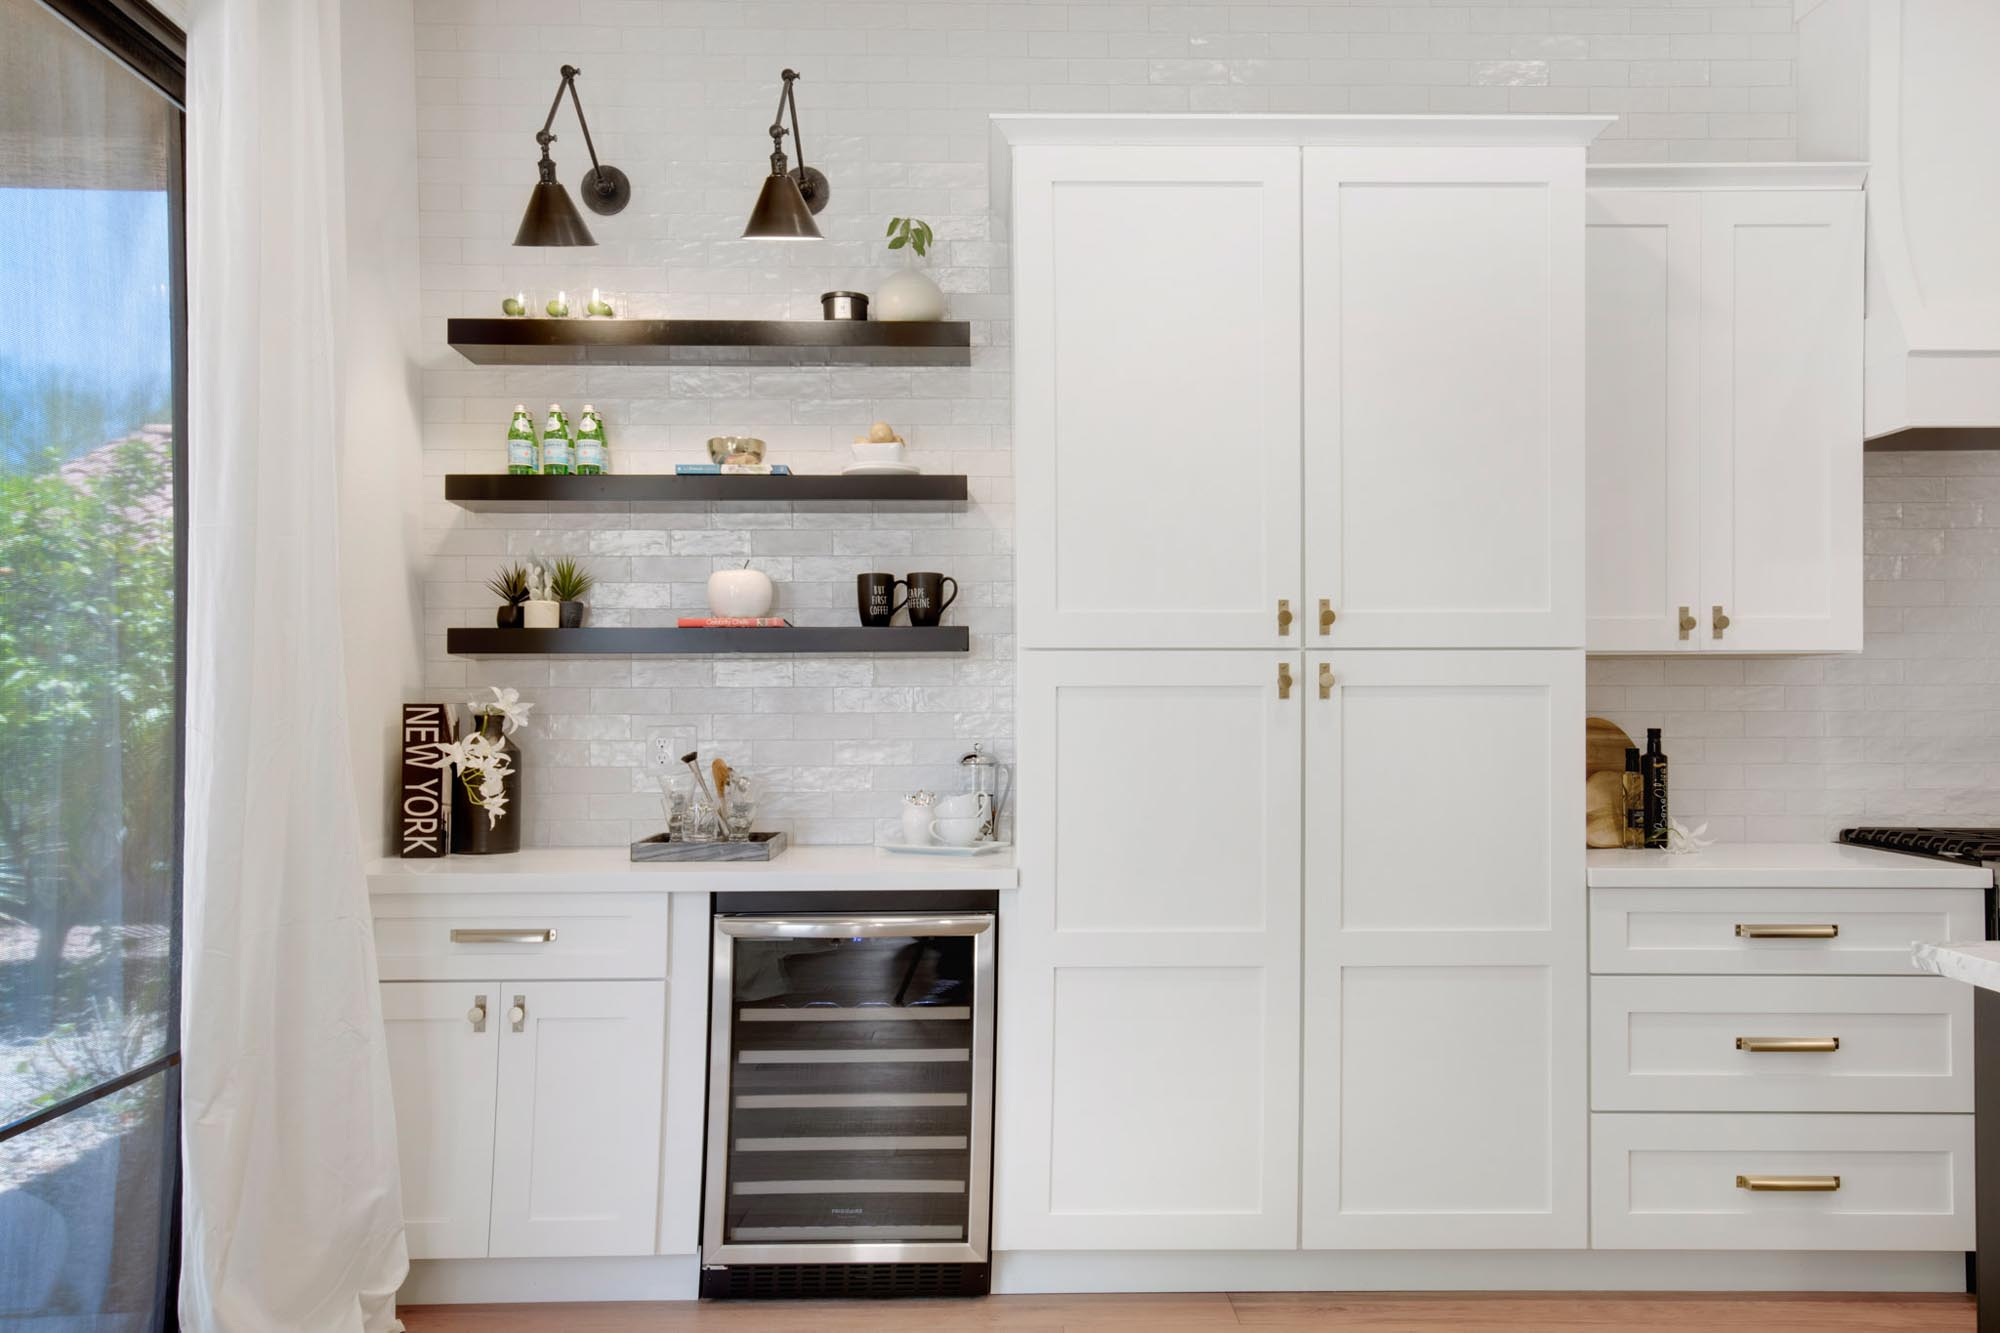 White cabinets and black shelves with decorations